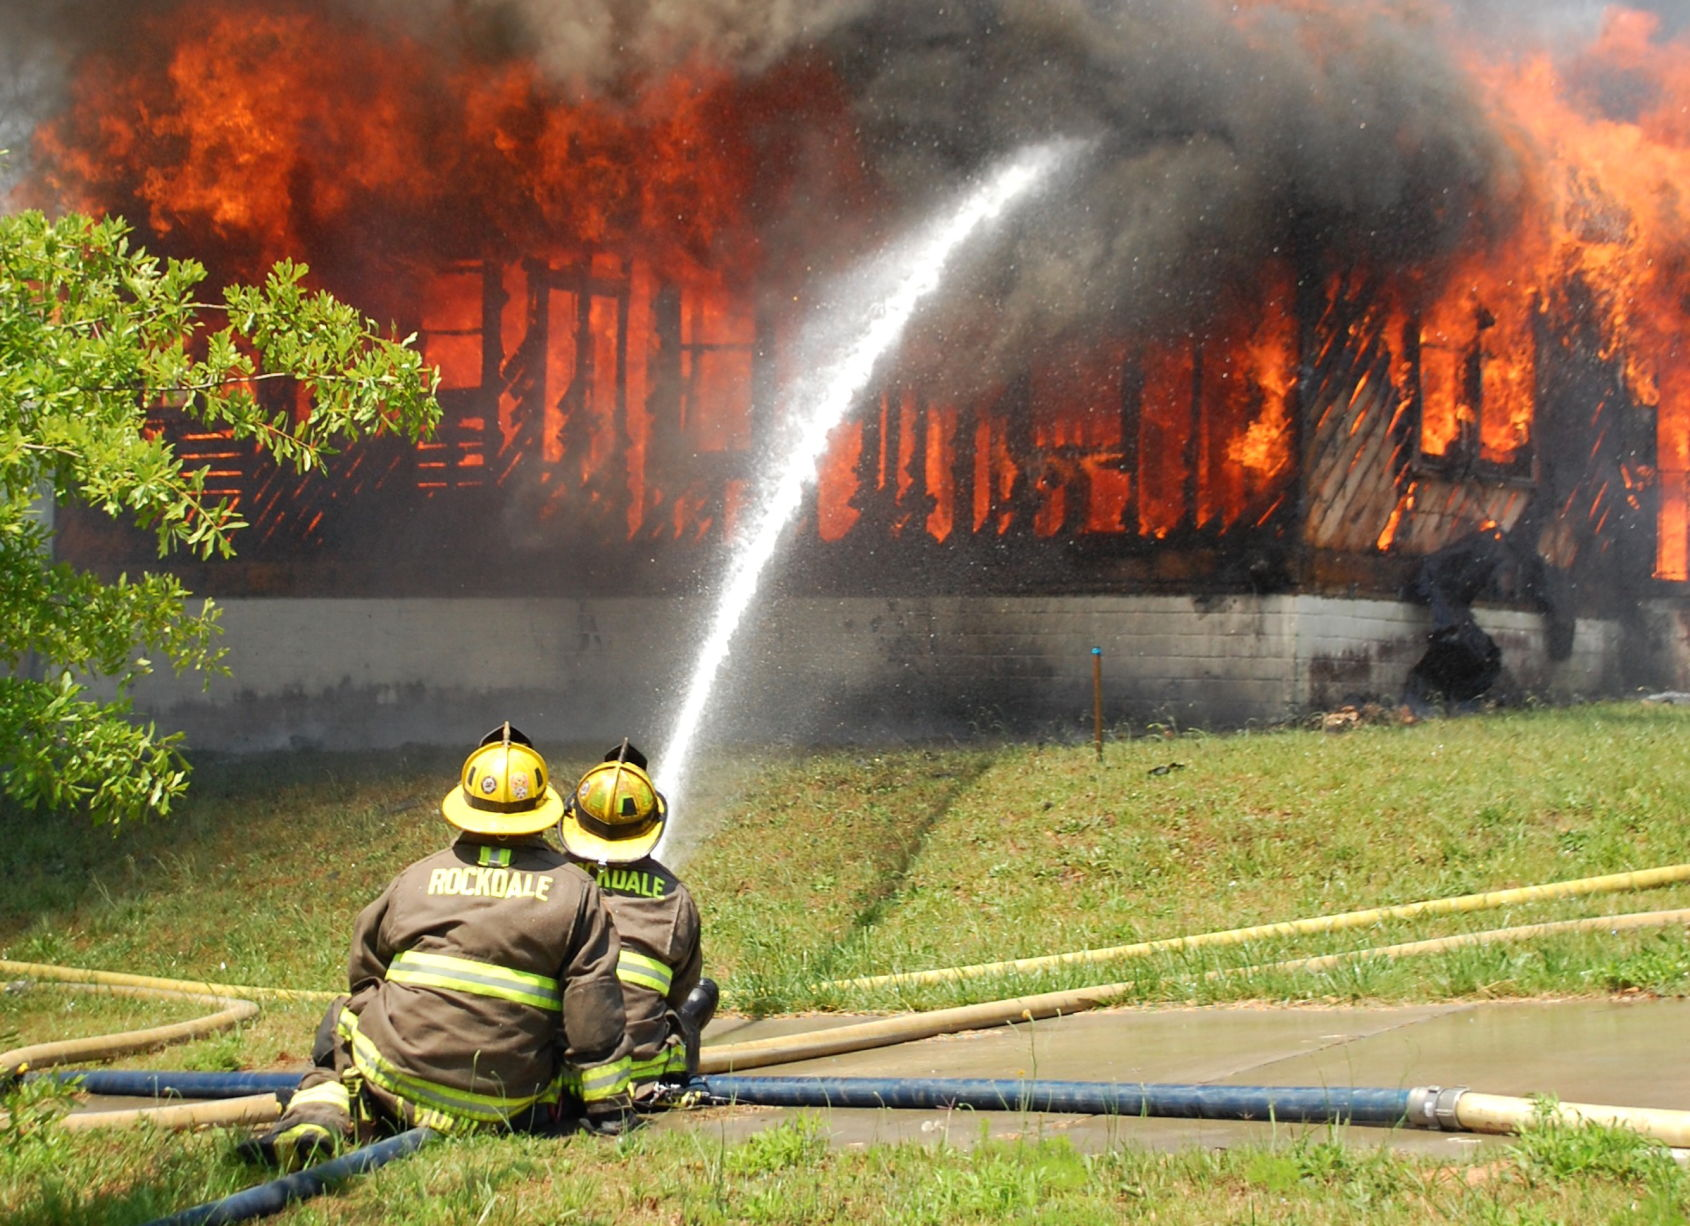 Rockdale firefighters burn donated houses for practice